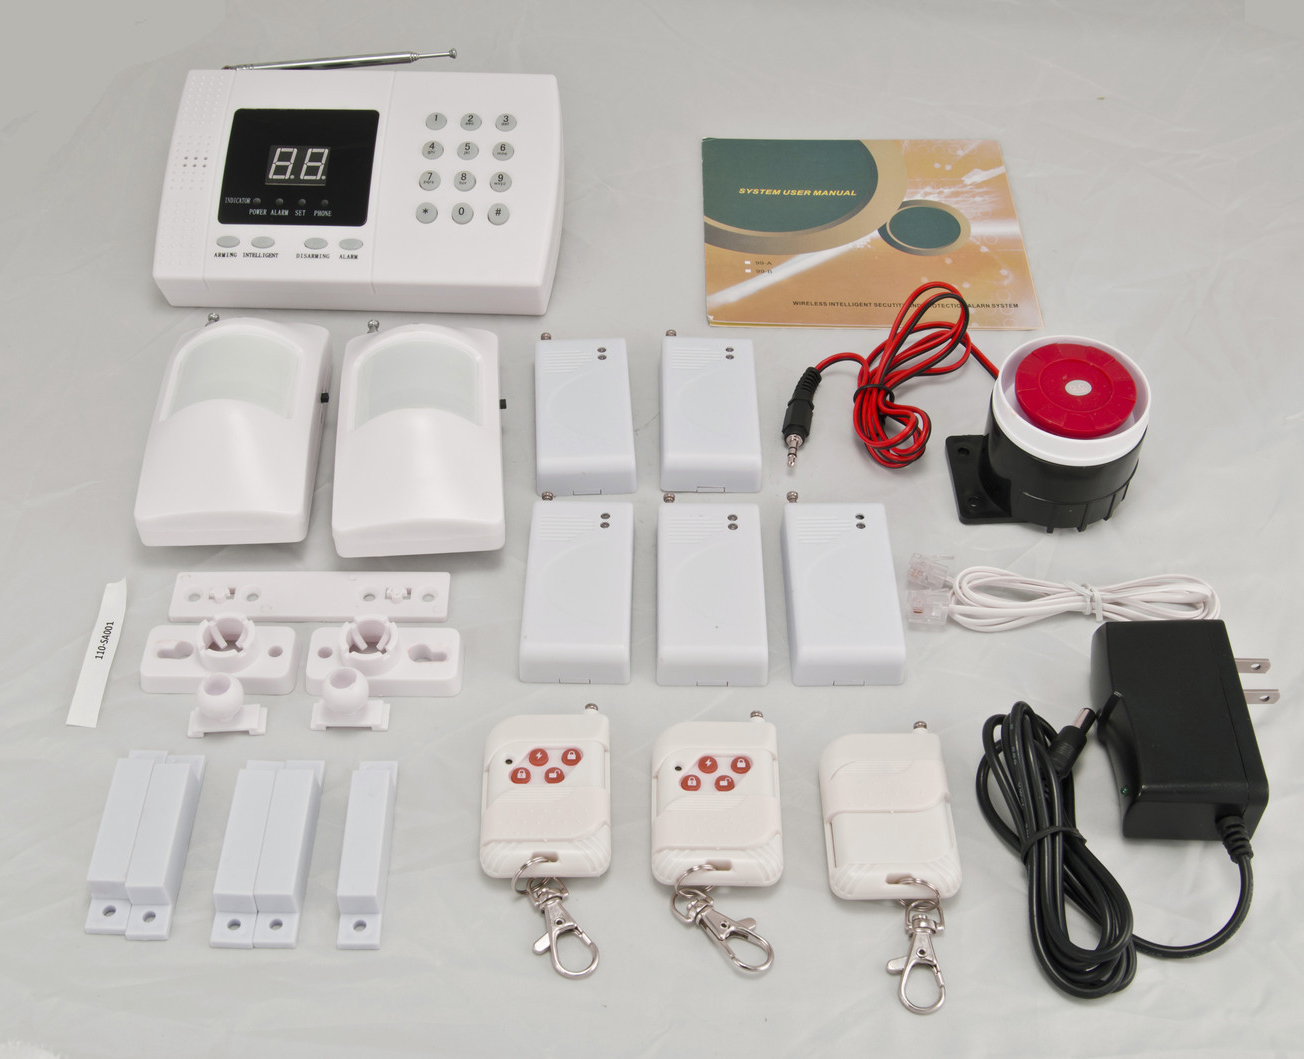 IMeshbean Wireless Home Security Alarm System DIY Kit With Auto Dial U0026  Outdoor Siren Model #001   Walmart.com